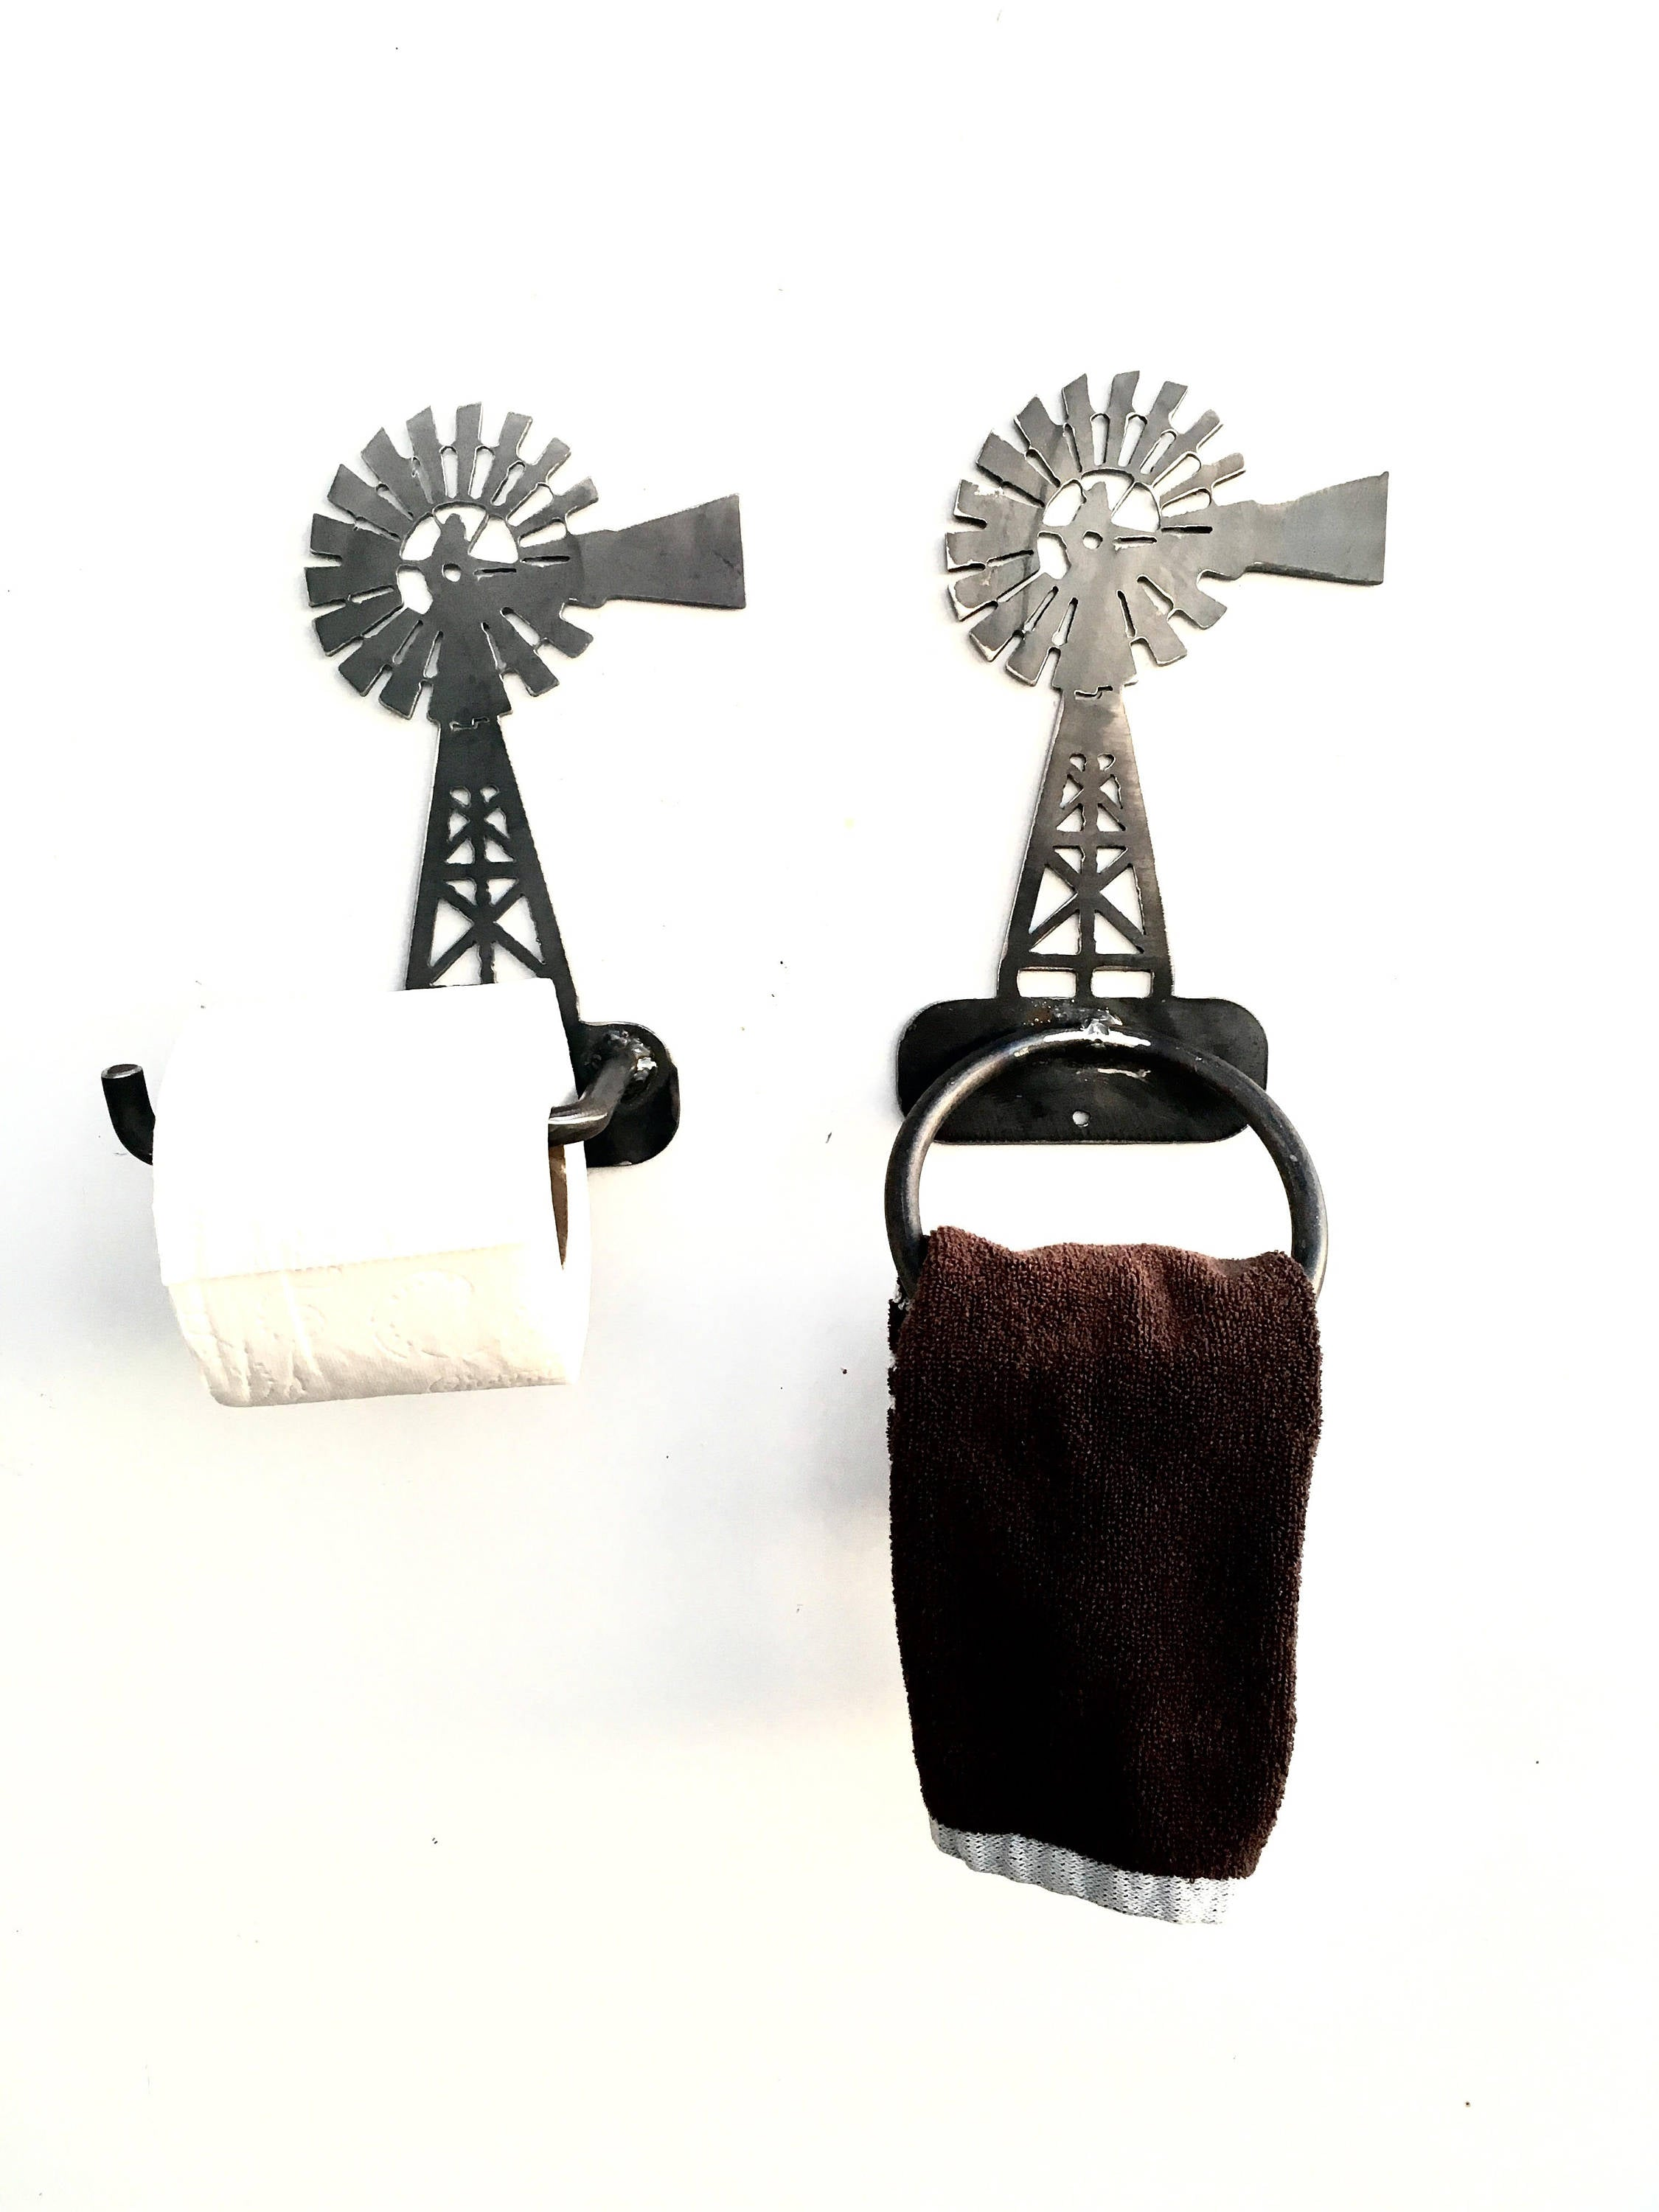 Windmill Towel Rack